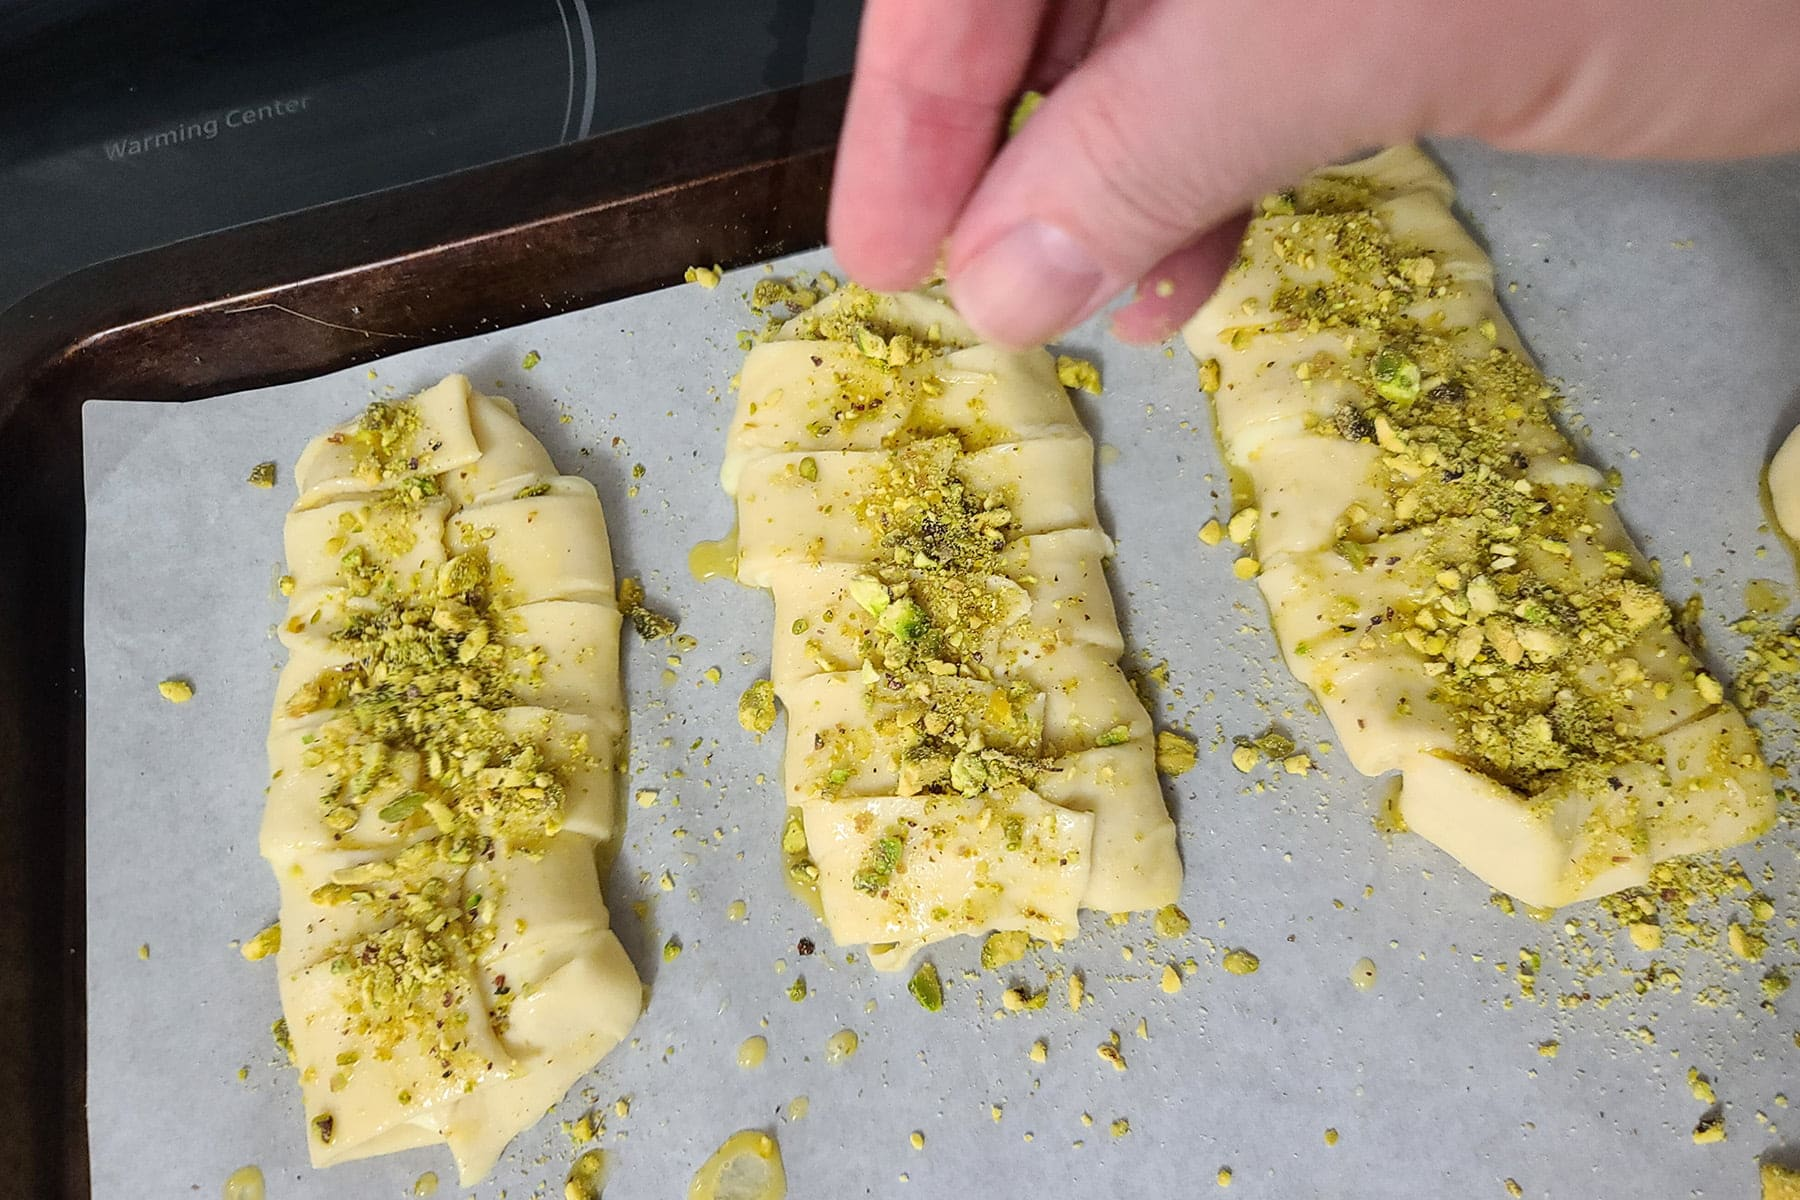 A hand sprinkles chopped pistachios over each pastry.